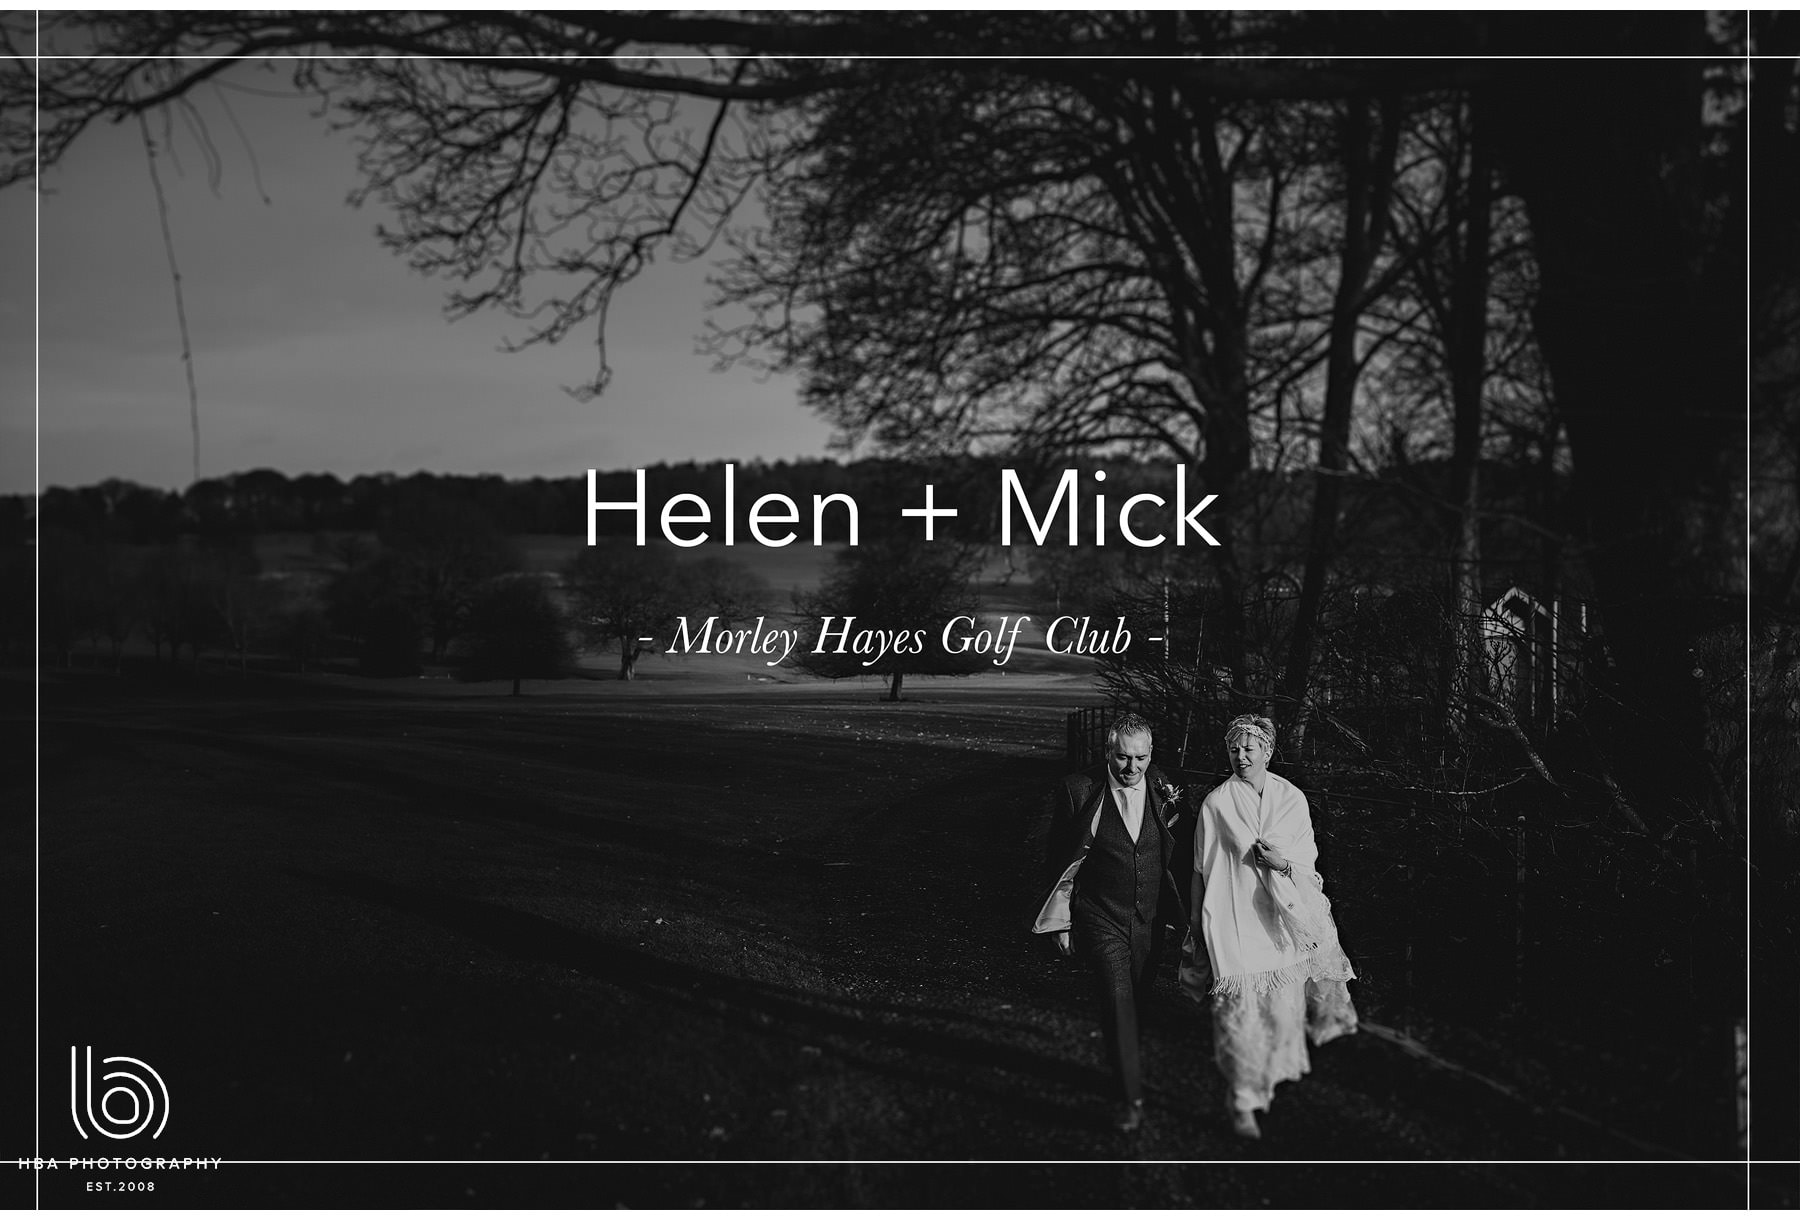 A morely Hayes wedding